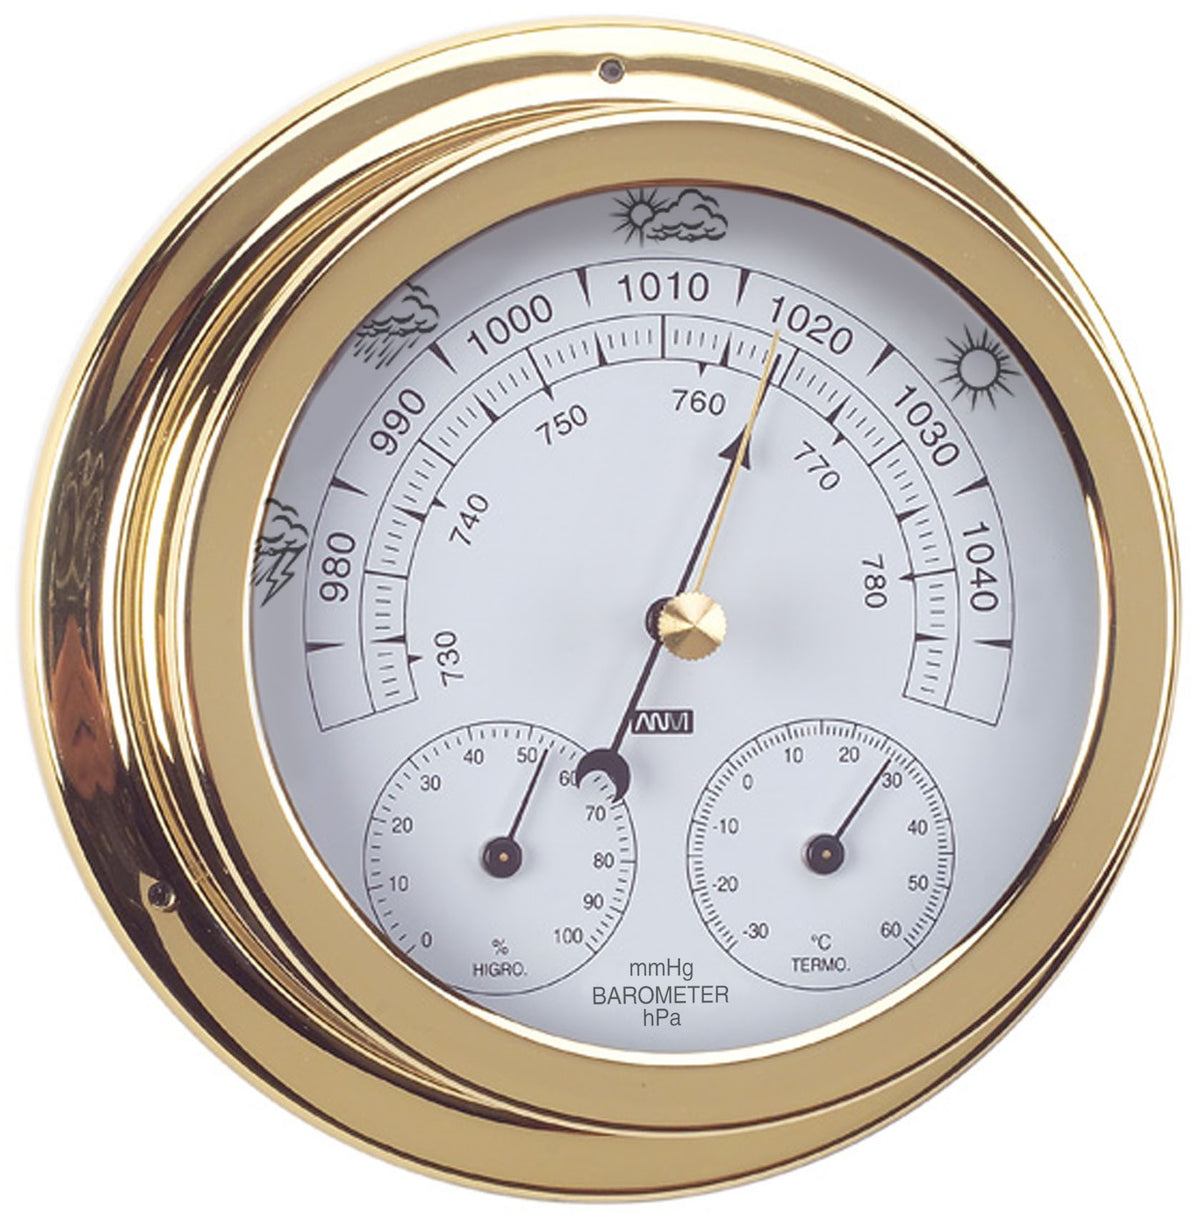 ANVI Barometer, Thermometer, Hygrometer (Coastal only)